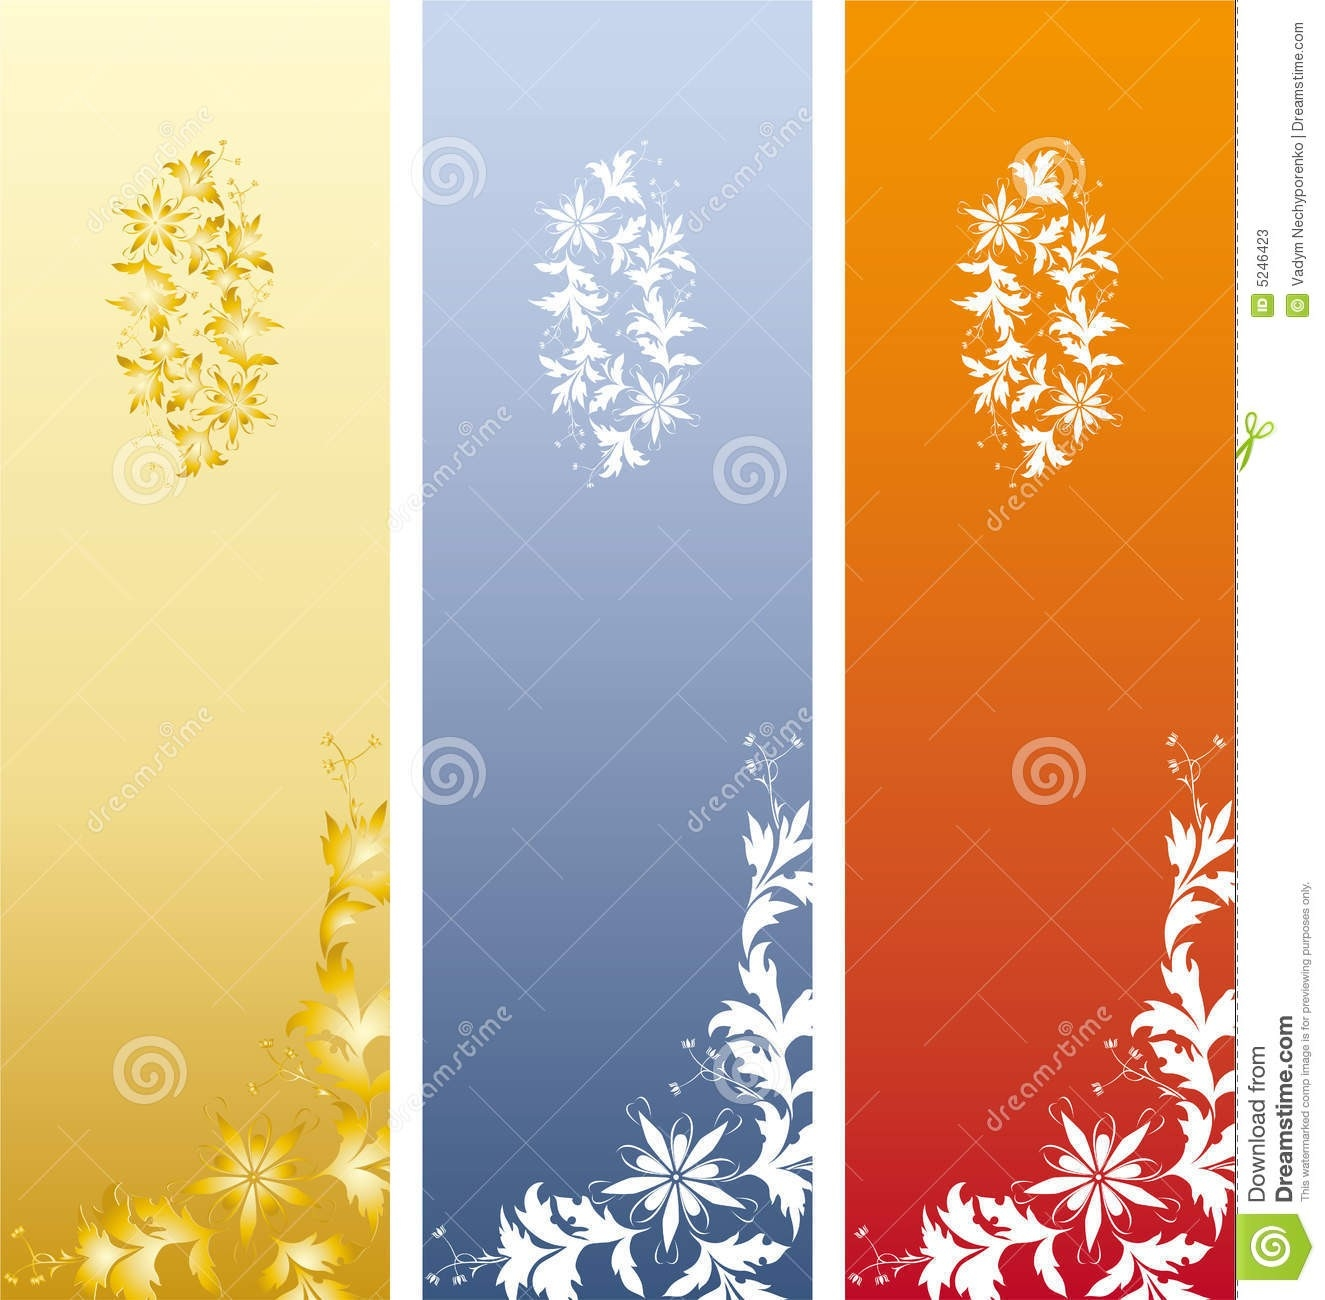 Floral Bookmark Stock Vector. Illustration Of Artwork - 5246423 intended for Bookmark Background Designs Blue 27200